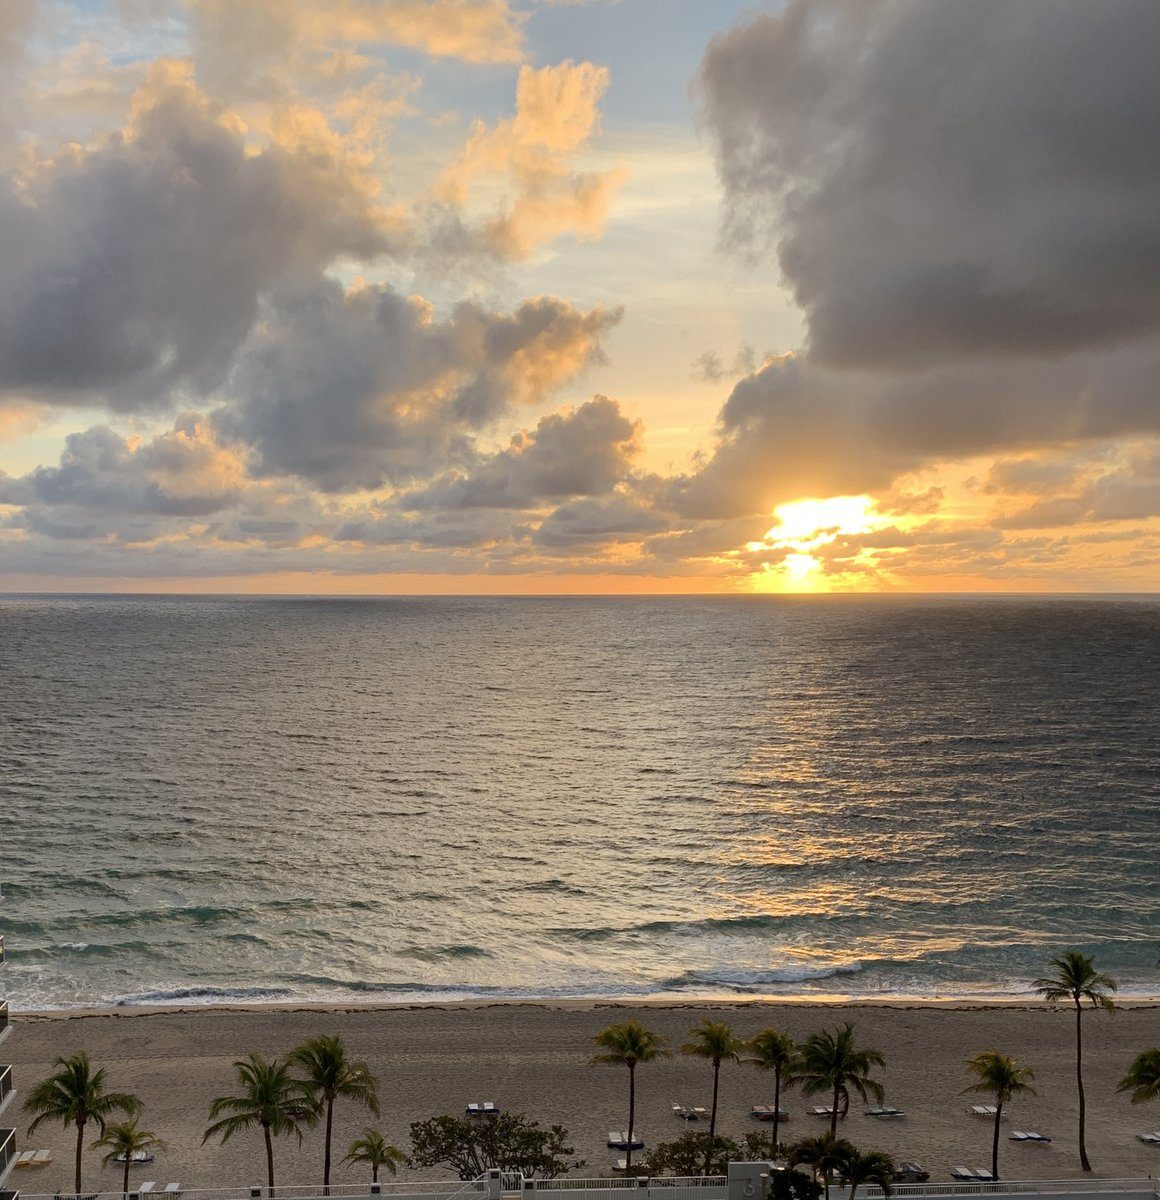 Start the week with a positive attitude and a dramatic sky. #Mondaymorning motivation in Fort Lauderdale.